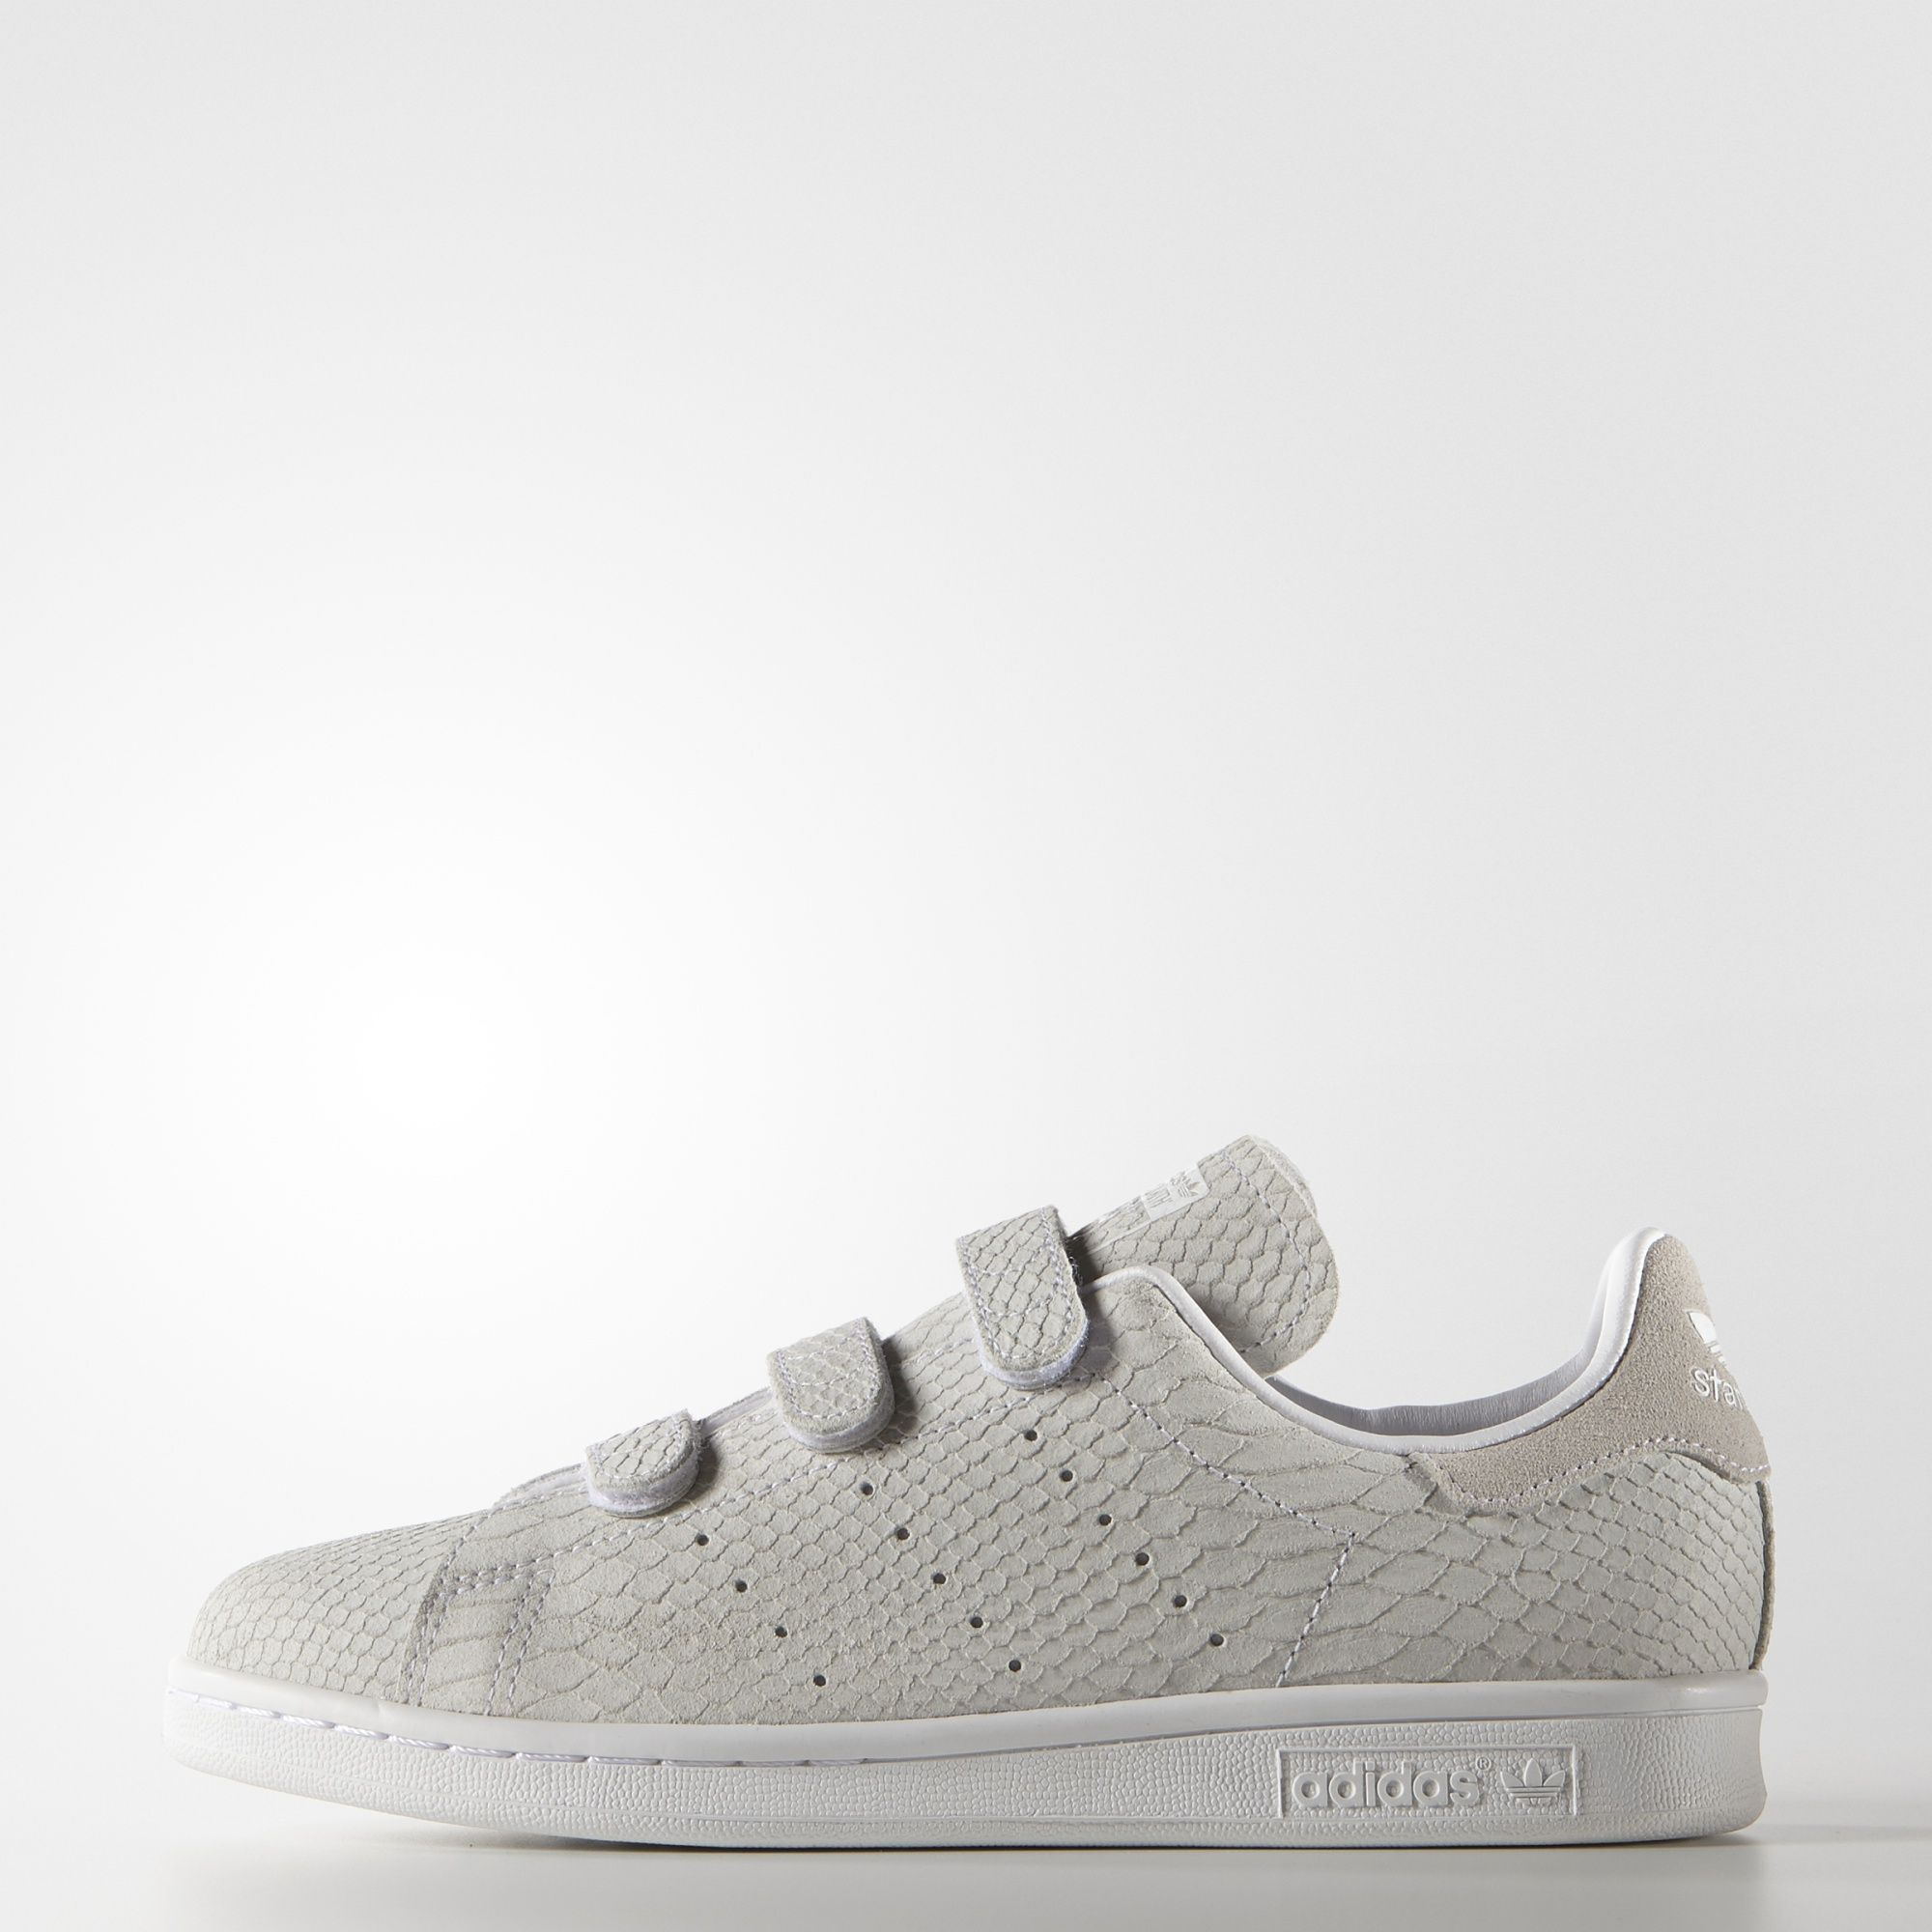 The Stan Smith is legendary for its clean lines and simple ...